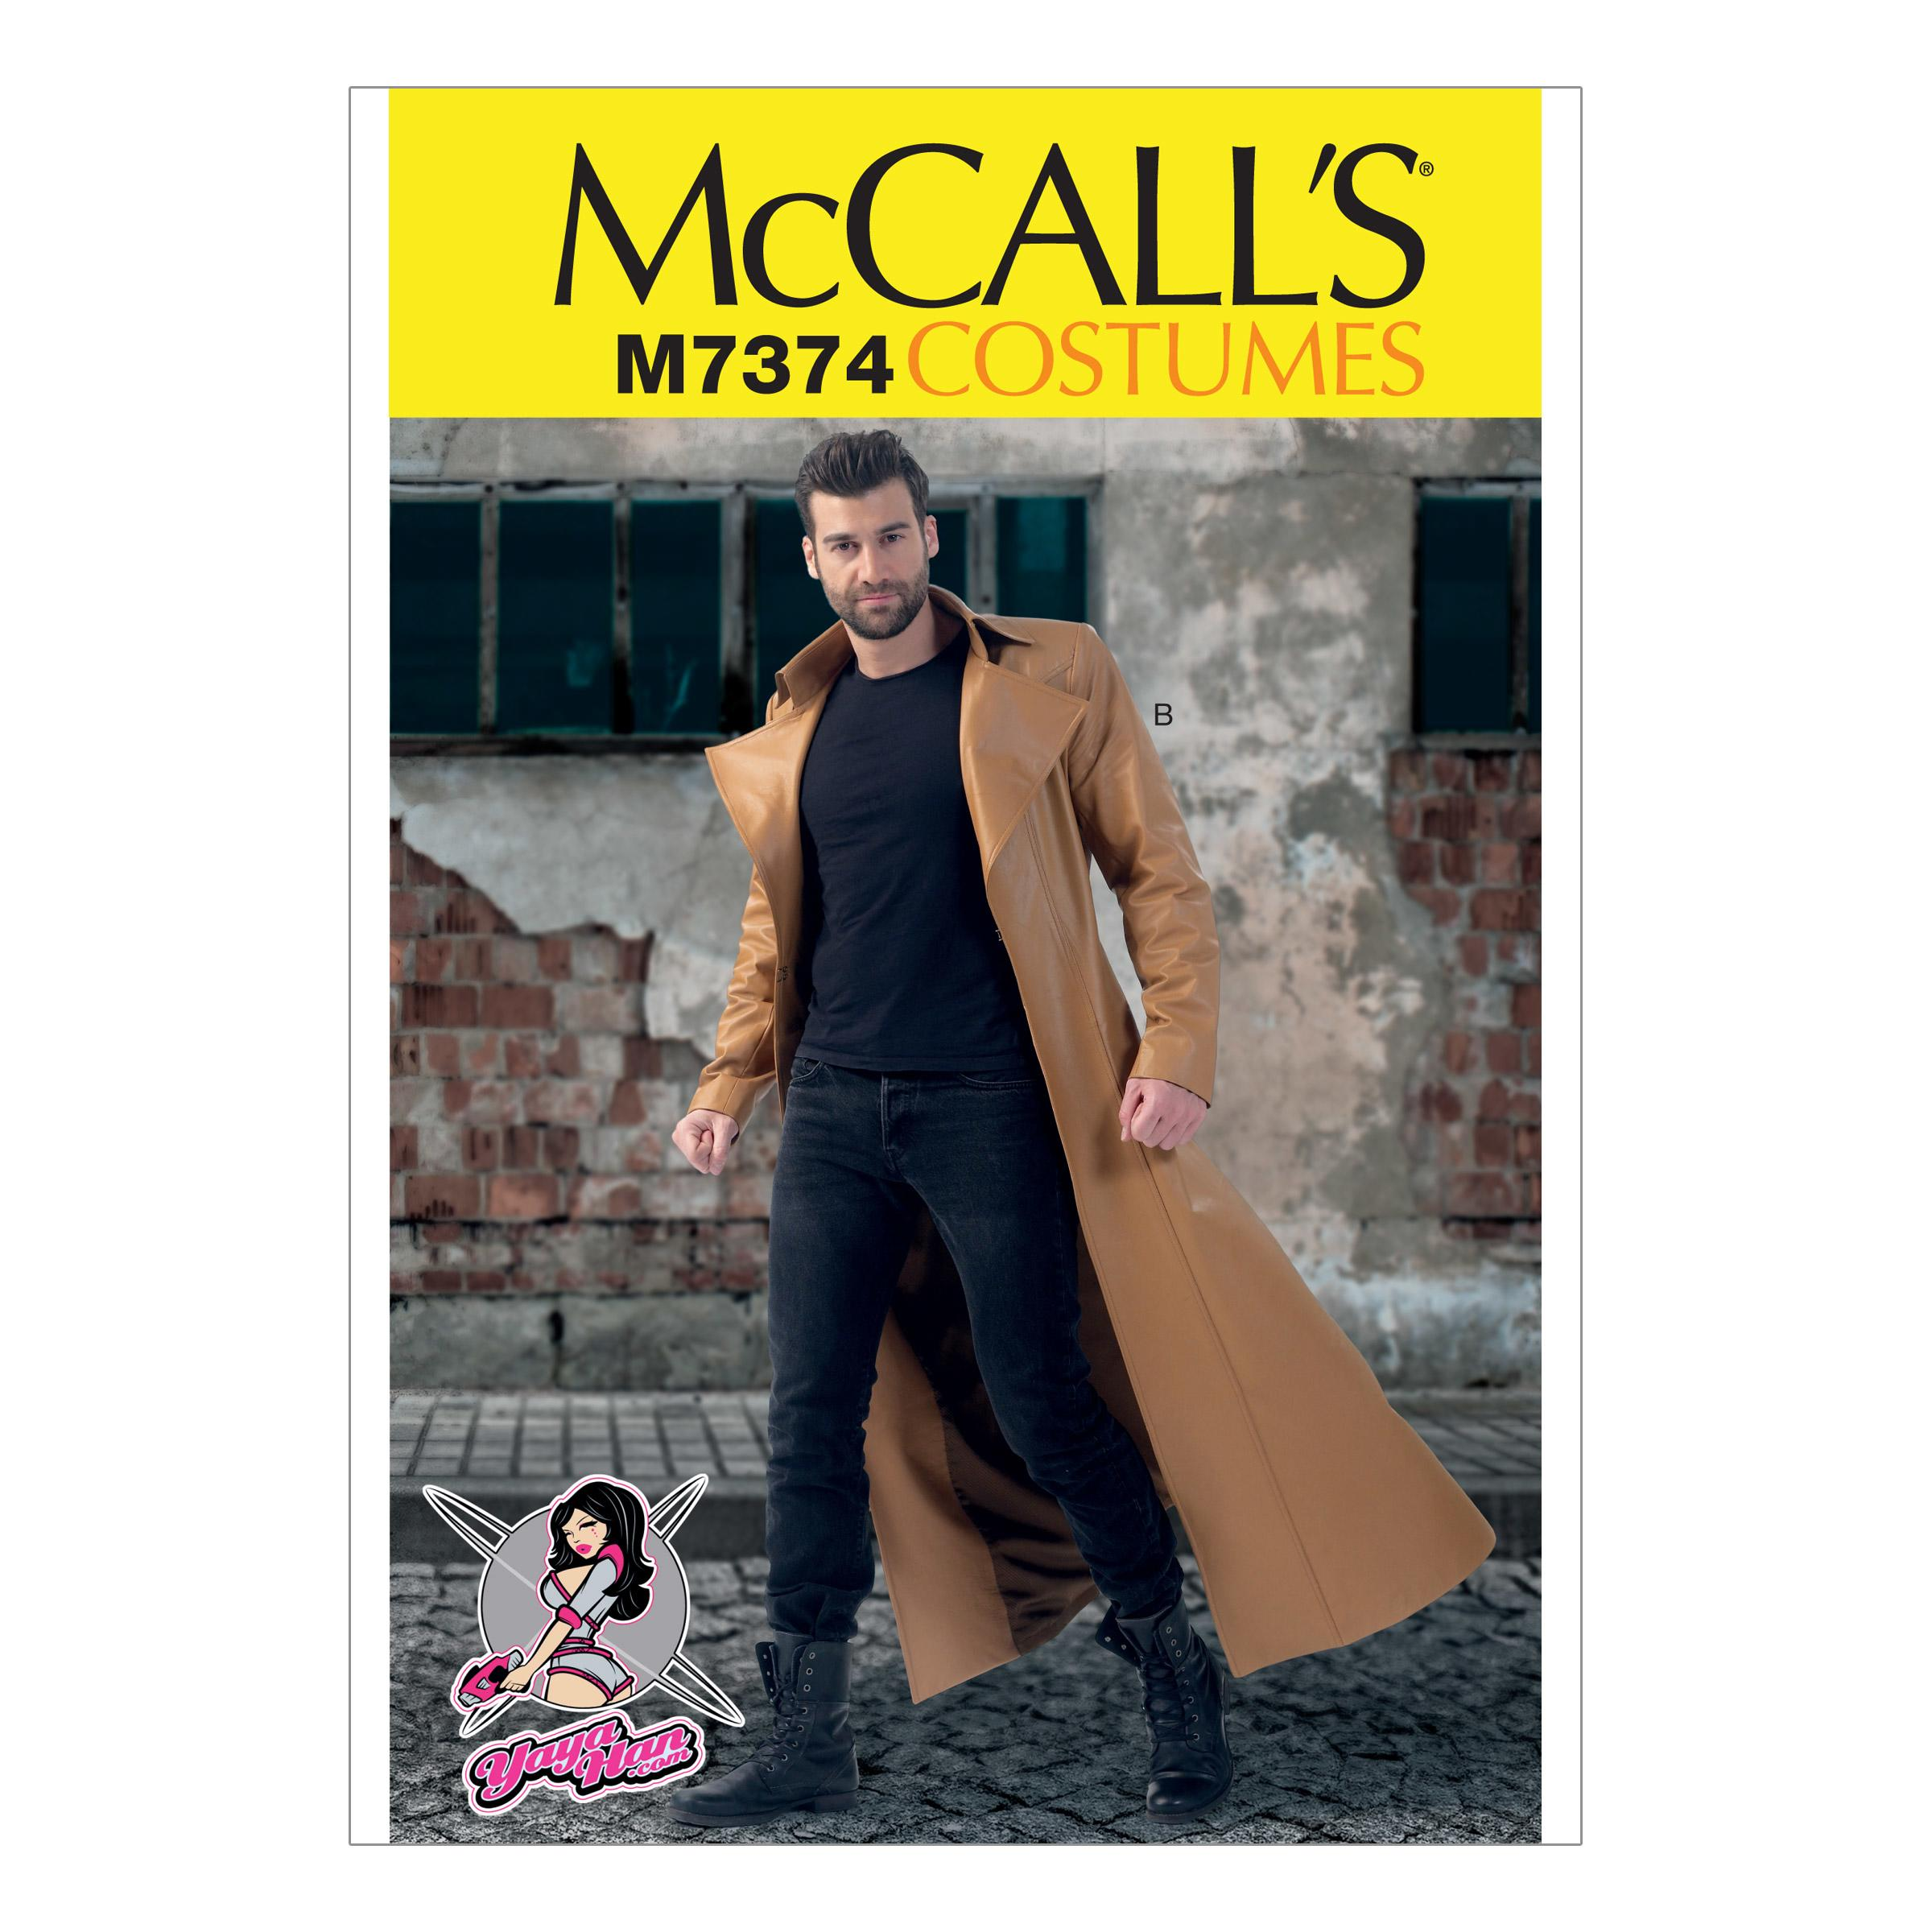 McCalls M7374 Coats, Costumes, Men